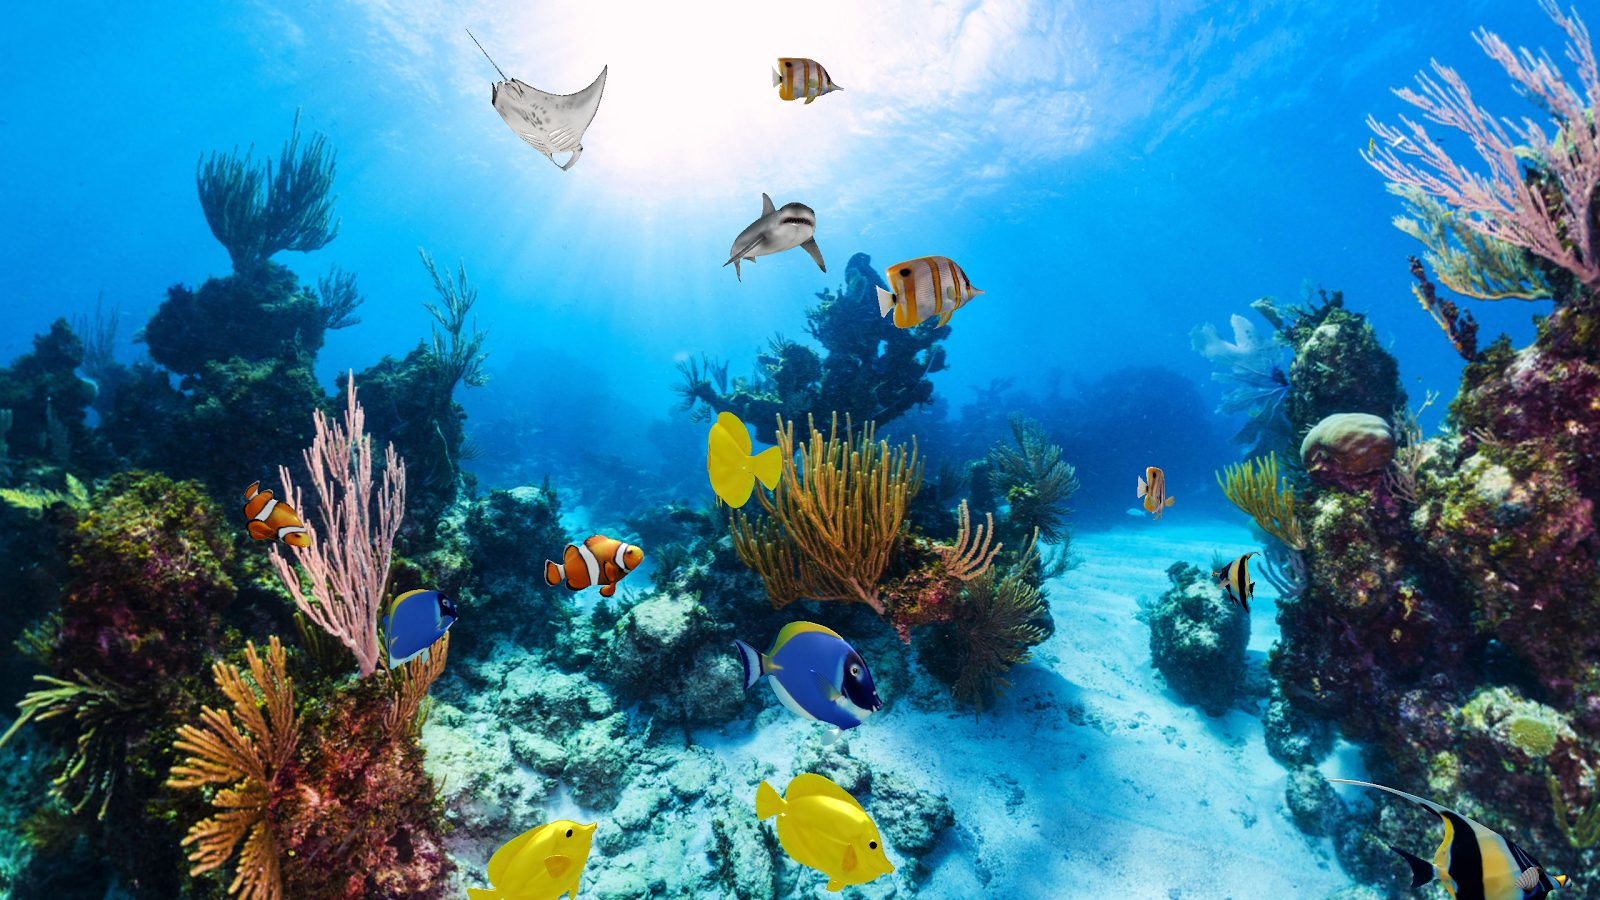 Hof Almog, or Coral Beach, with its colorful fish and coral, is an ideal beach for snorkeling